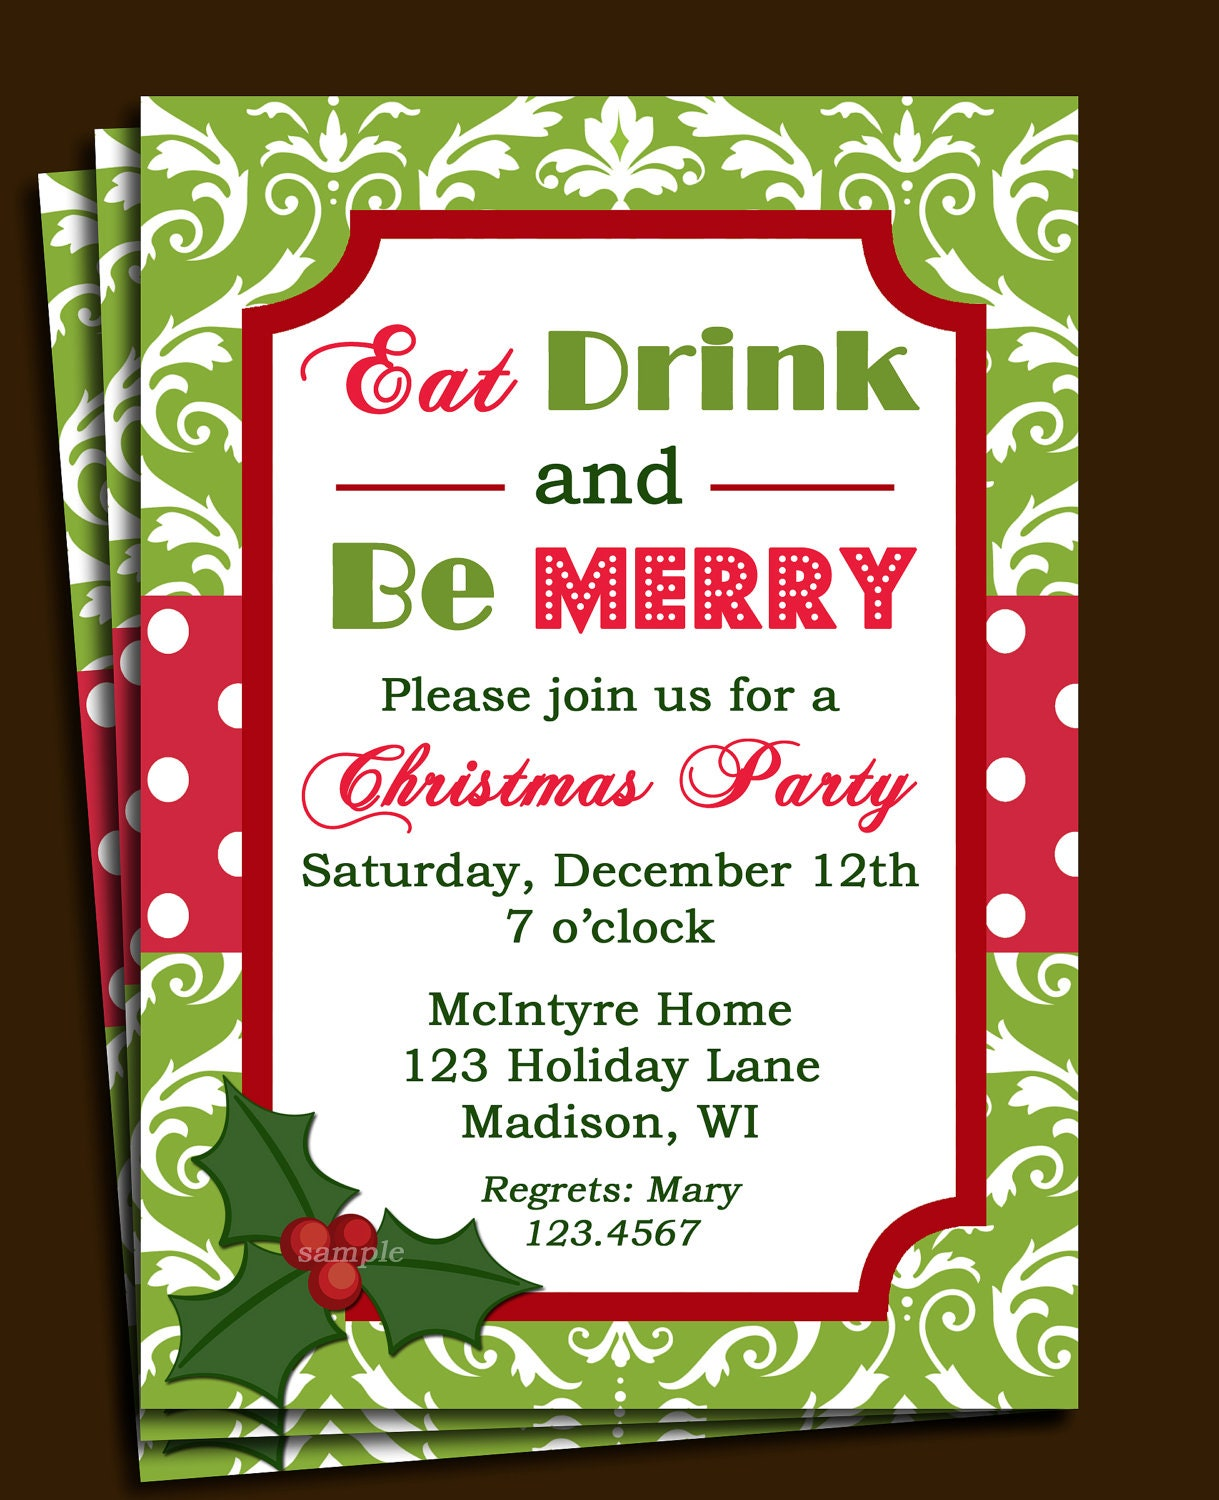 Sample invitation for christmas party from company leoncapers sample invitation for christmas party from company spiritdancerdesigns Images